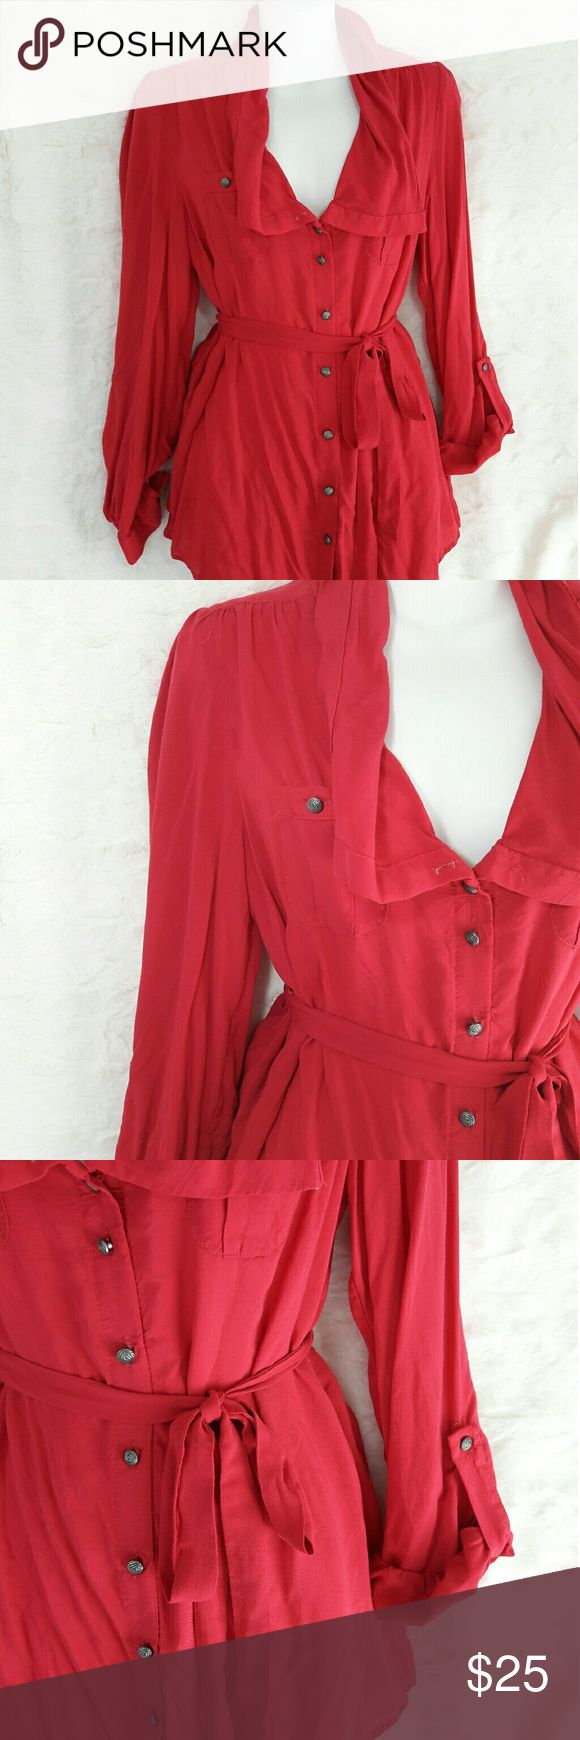 Odille hot pink blouse sz2 Like new! Very nice Nylon blouse size 2 , pictures show a tint of red, but its actually hot pink top Odille Tops Blouses